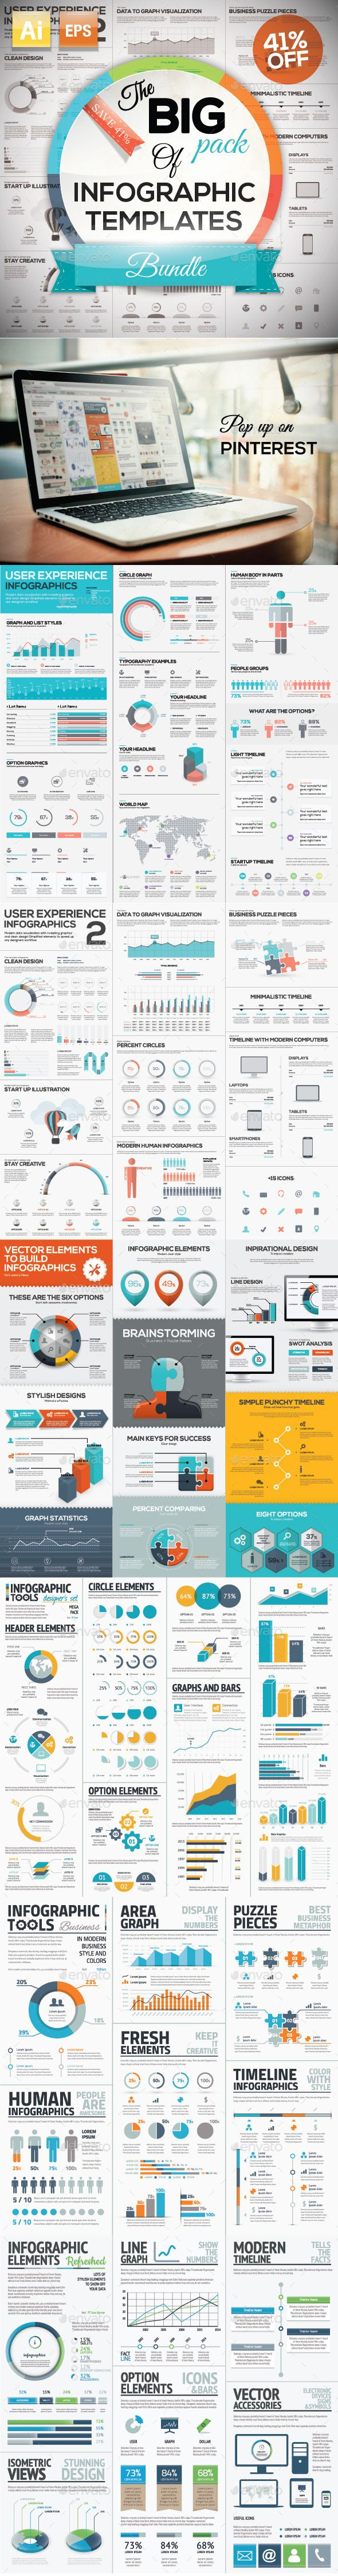 Want to build an #Infographic? Get tons of downloadable resources here.